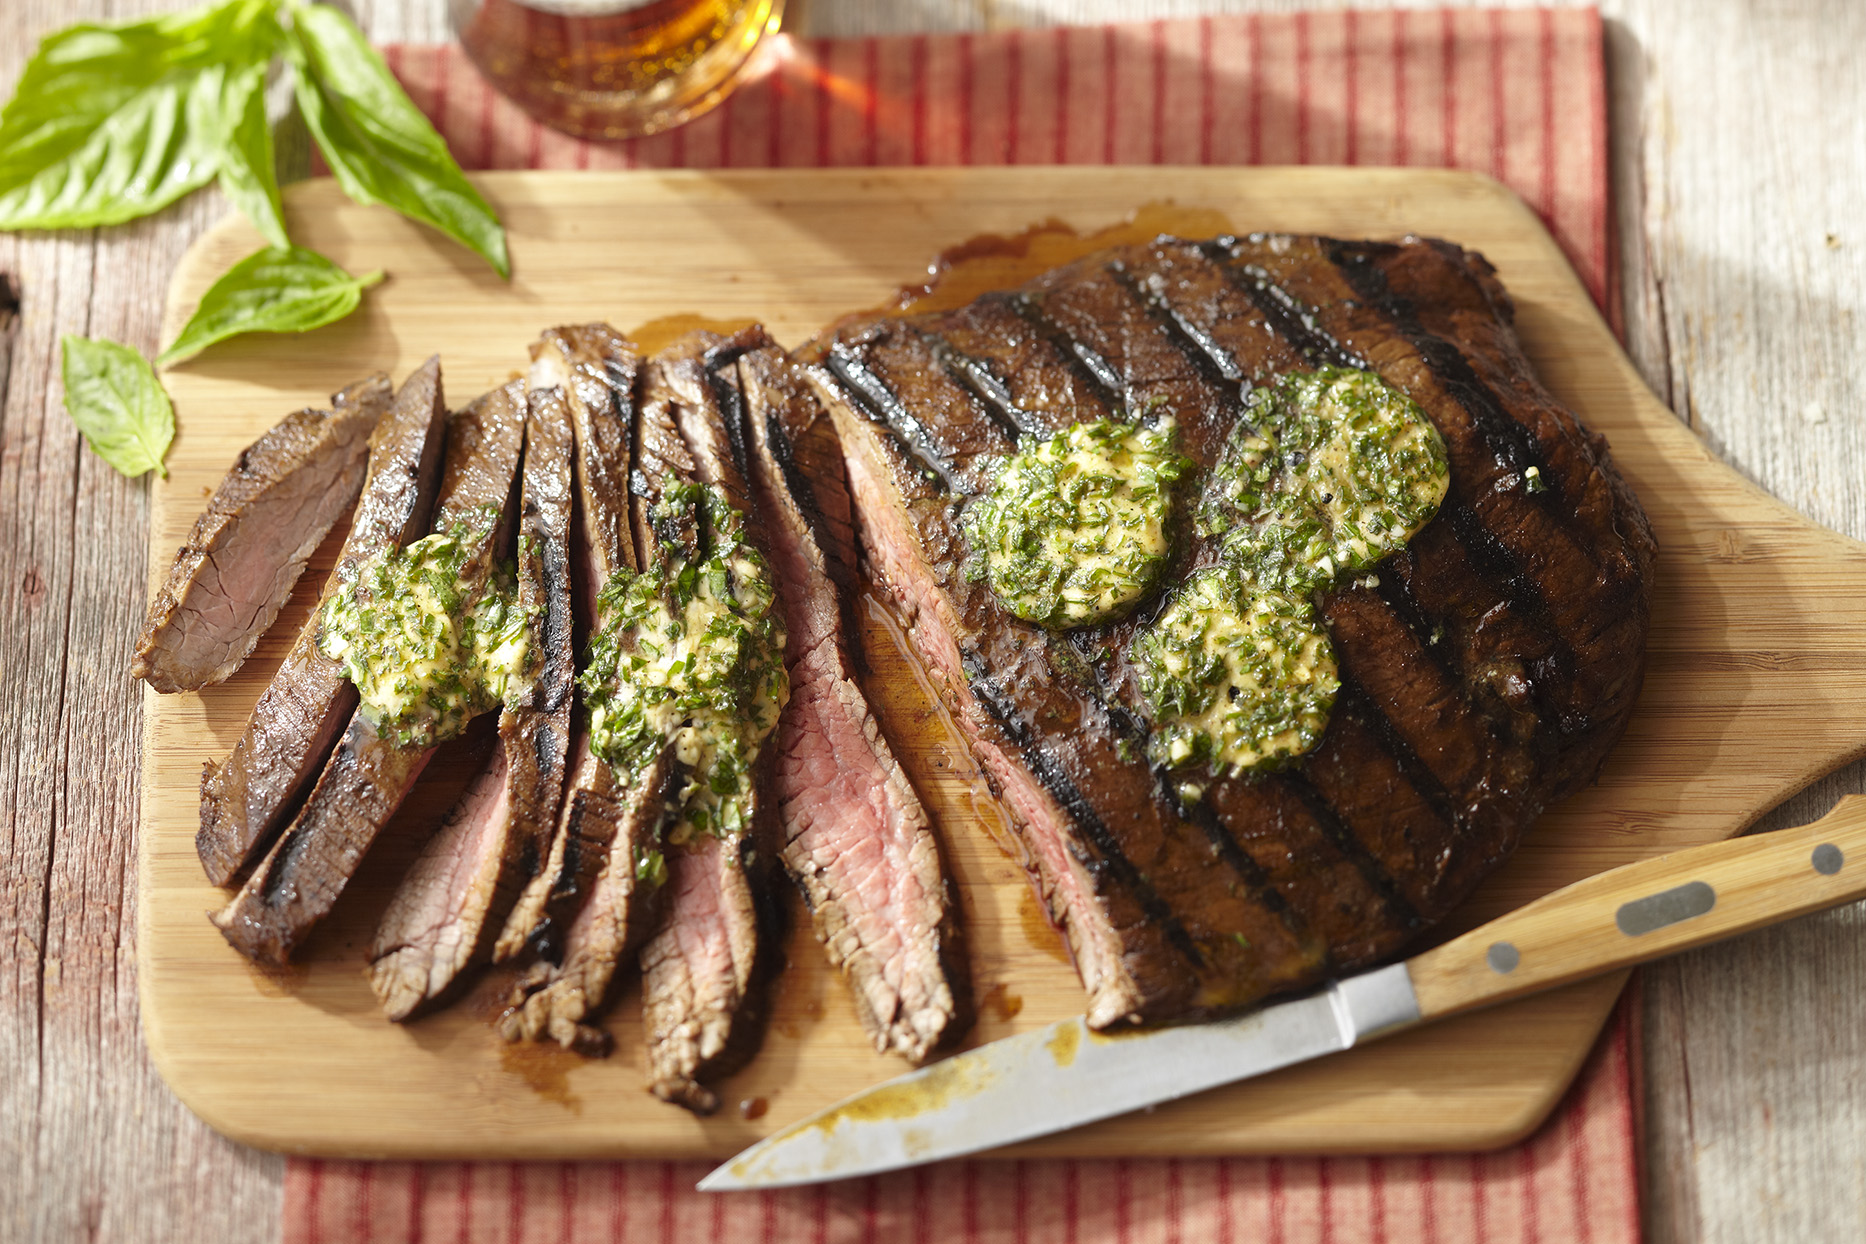 Flank steak on a wooden cutting board. Half the steak is sliced into strips with knife resting next to the steak on the cutting board. Pats of herb butter are melting over the top of the meat.